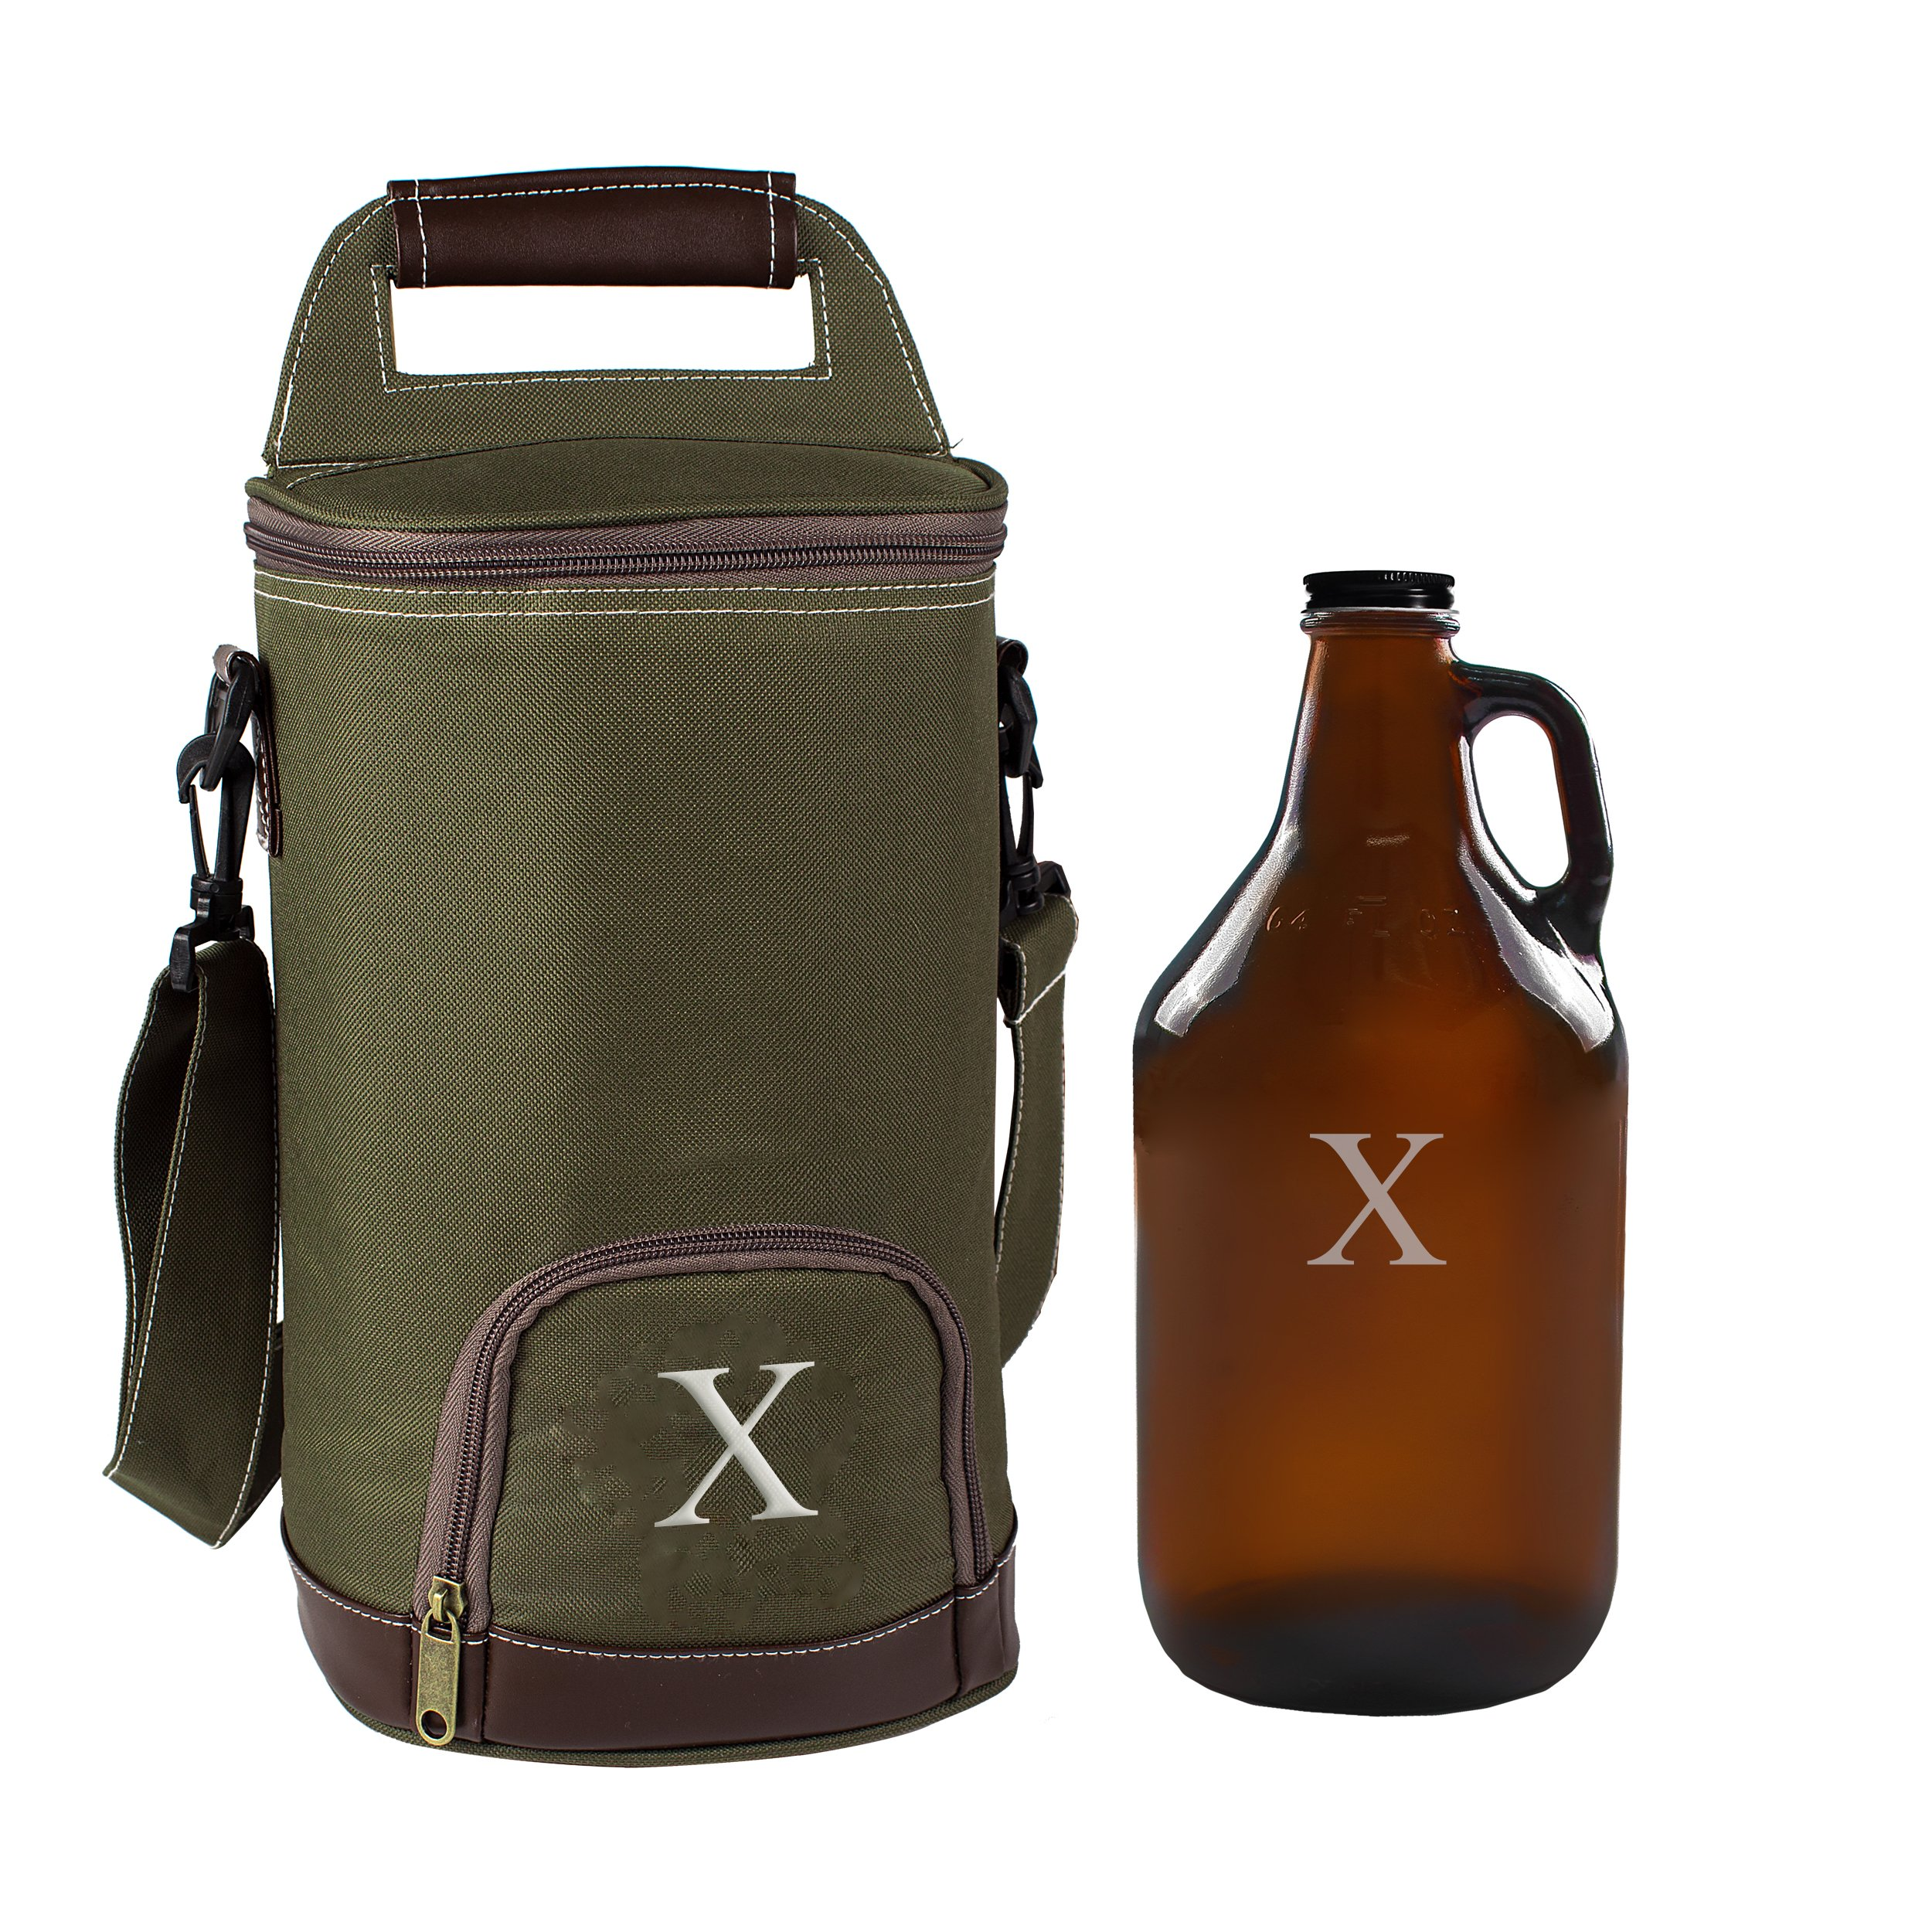 Cathy's Concepts Personalized Insulated Growler Cooler with Amber Growler, Monogrammed Letter X